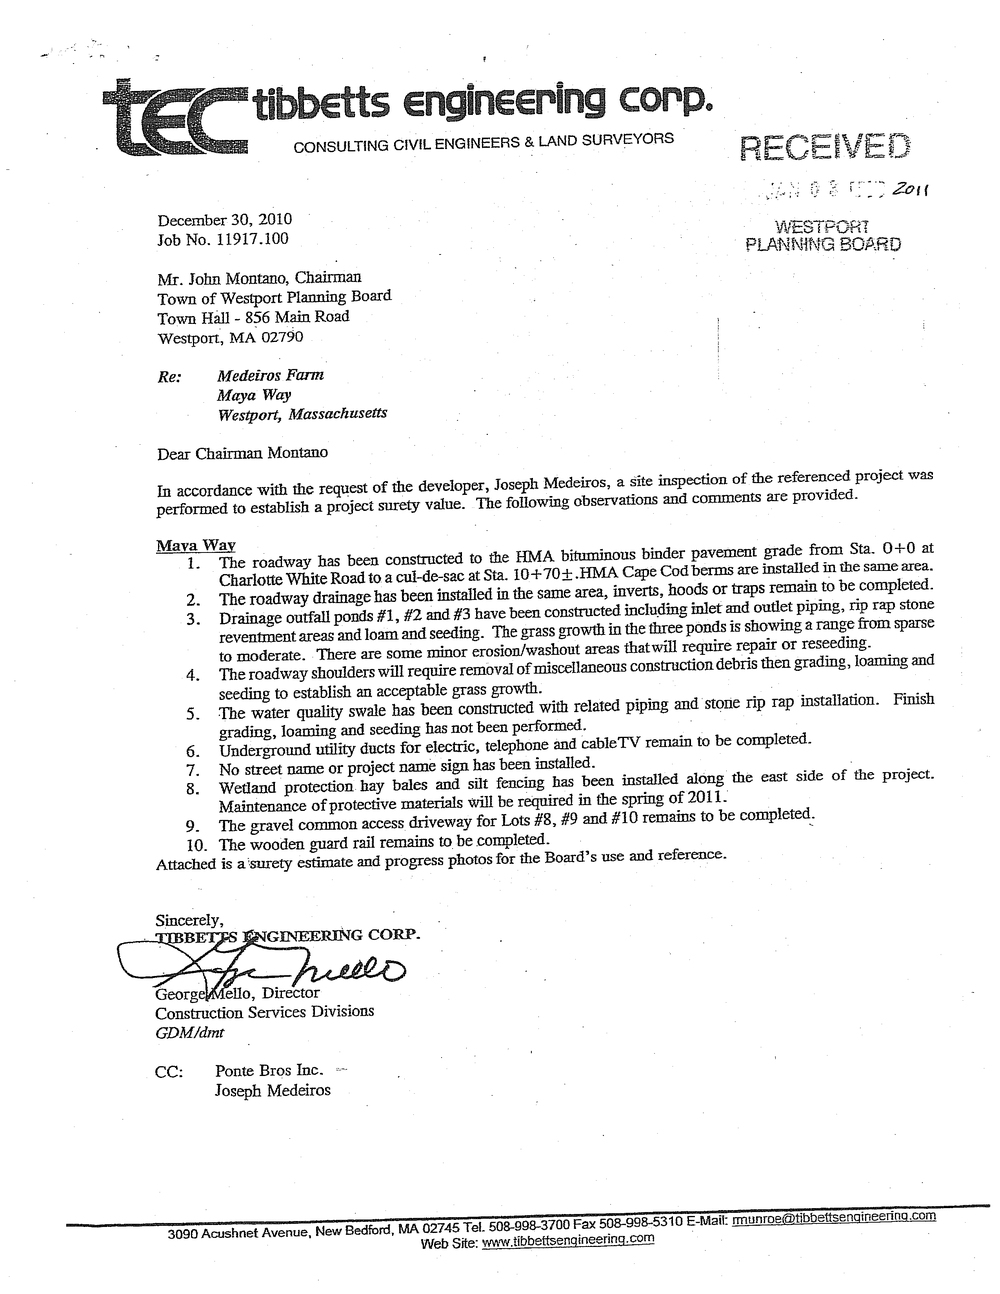 238 Charlotte White-Town approval-site specs-1.jpg